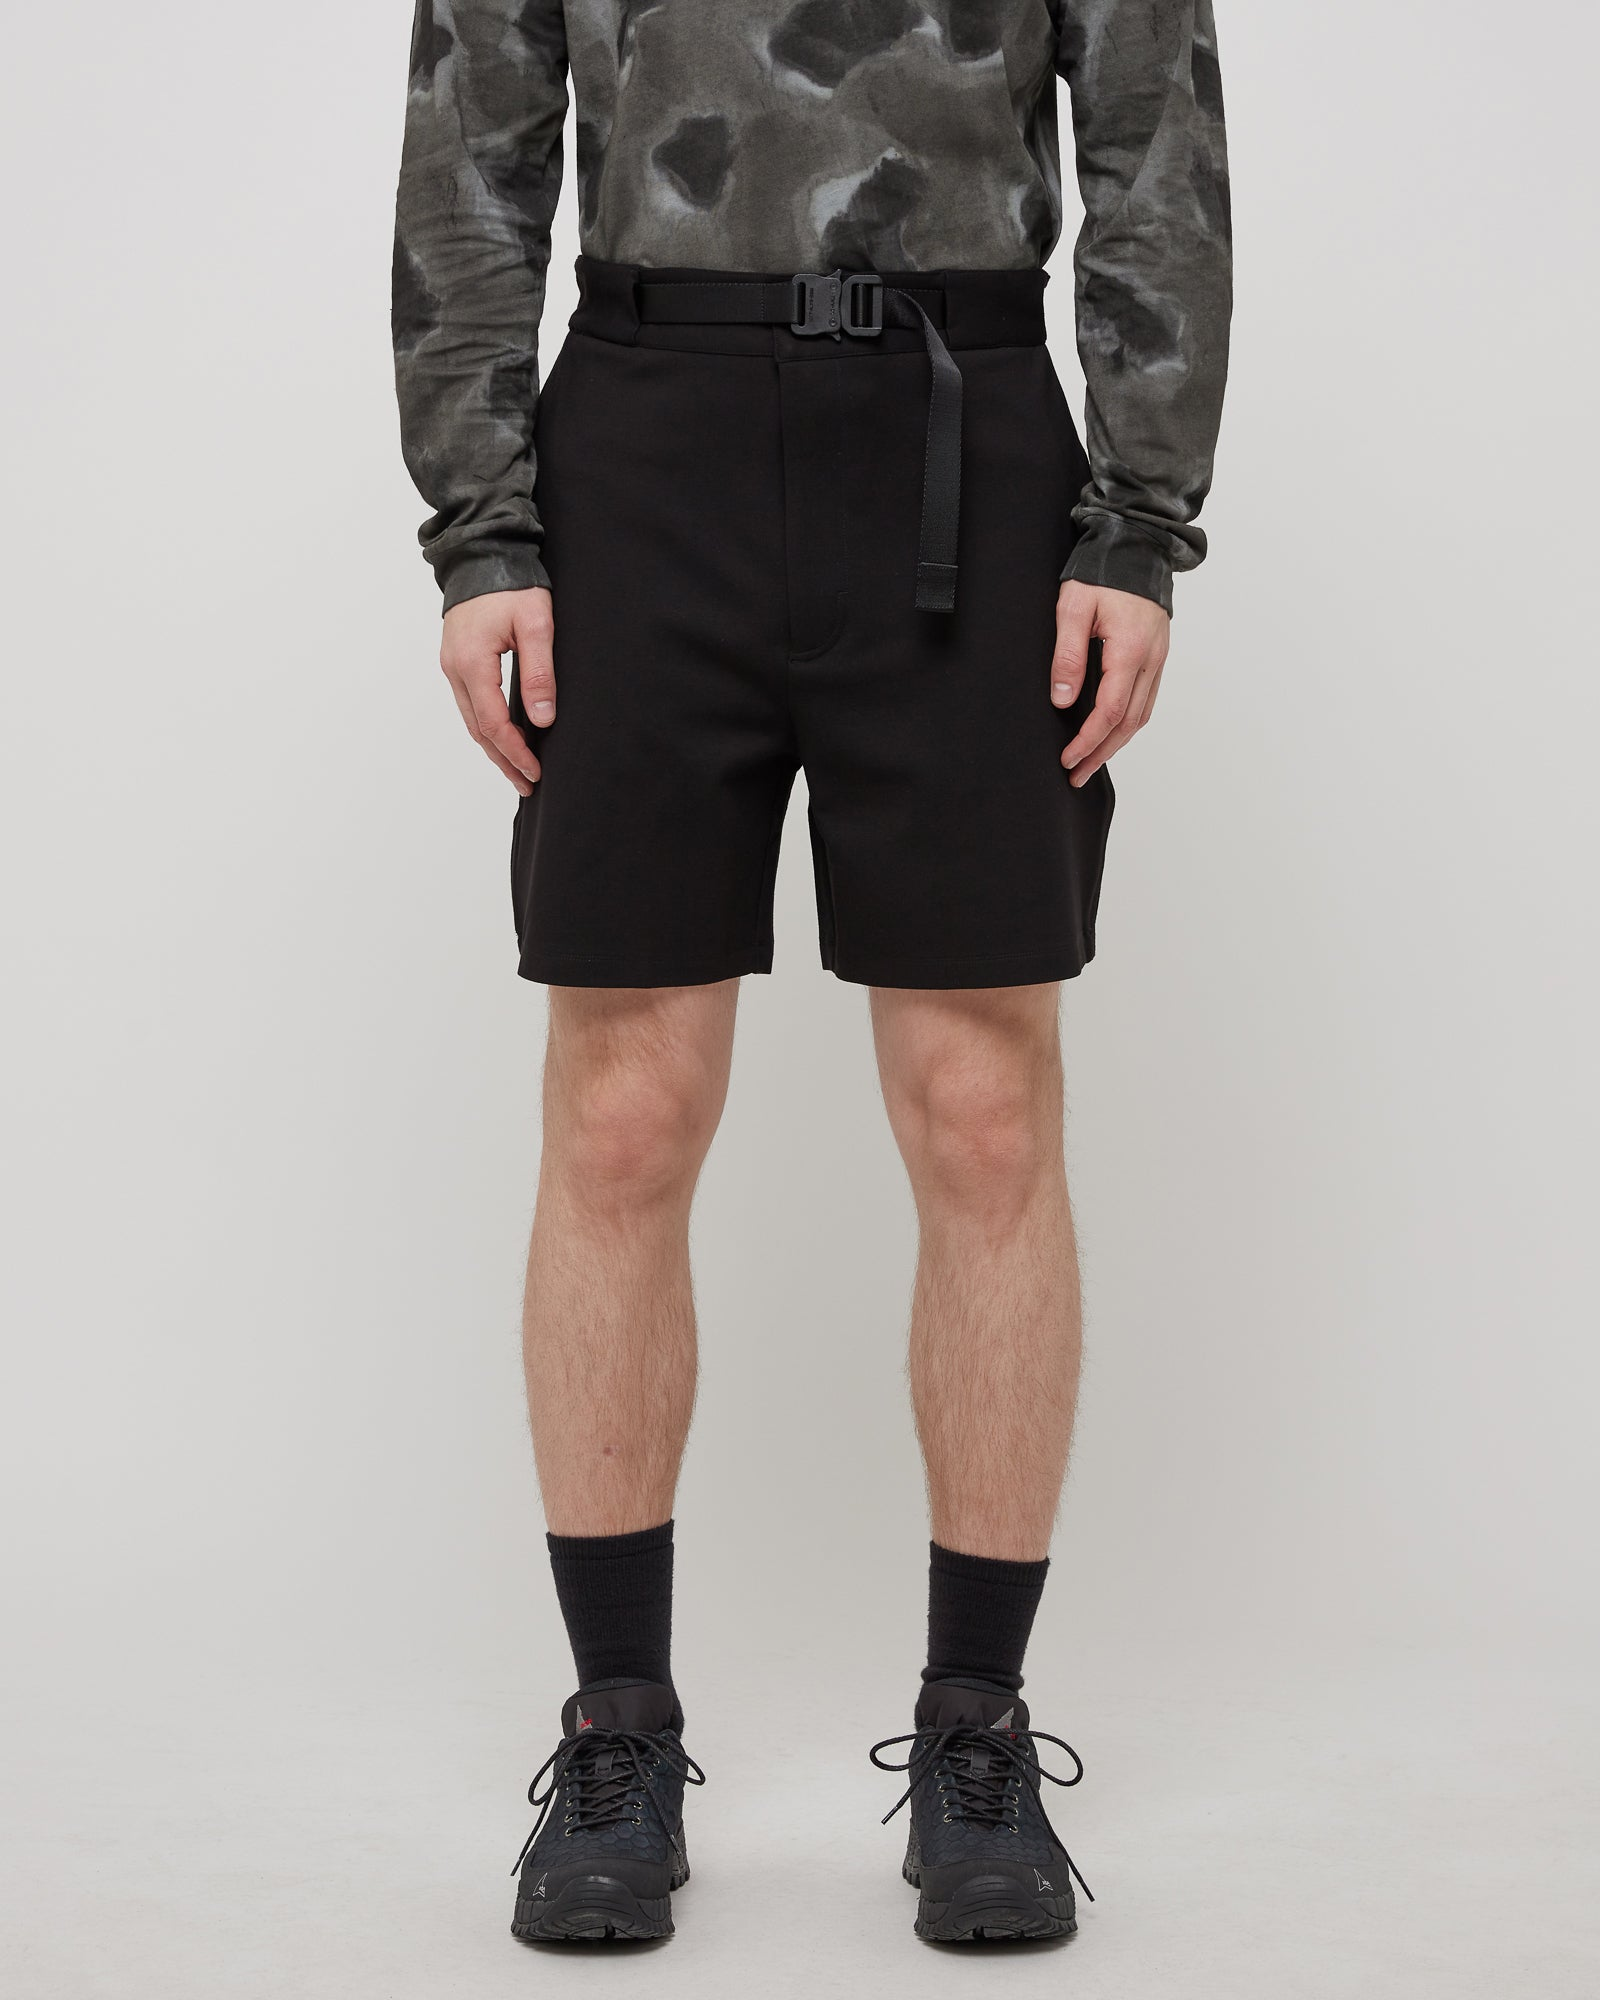 Classic Buckle Short in Black